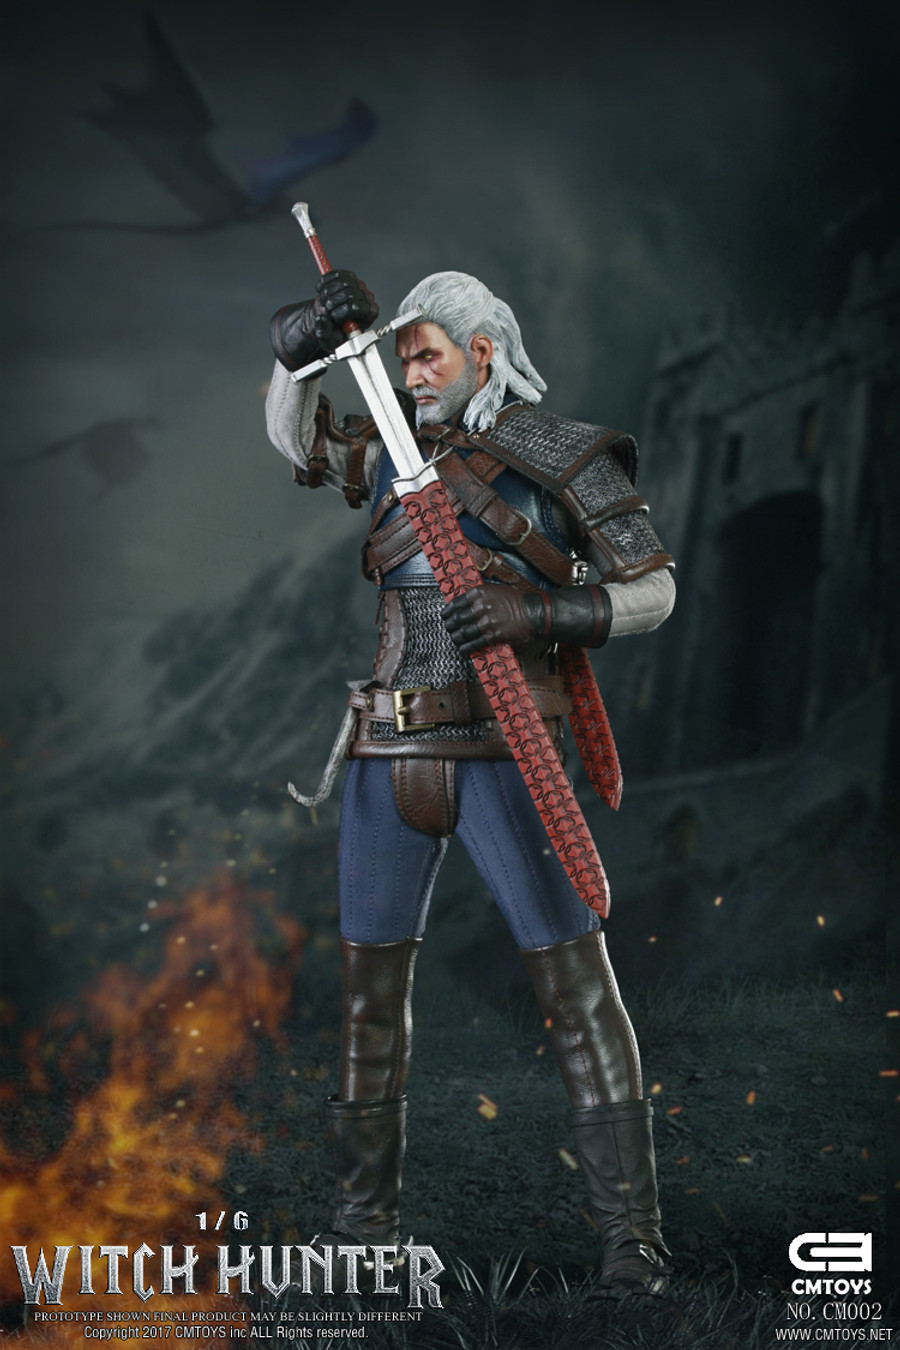 CM Toys - Witch Hunter